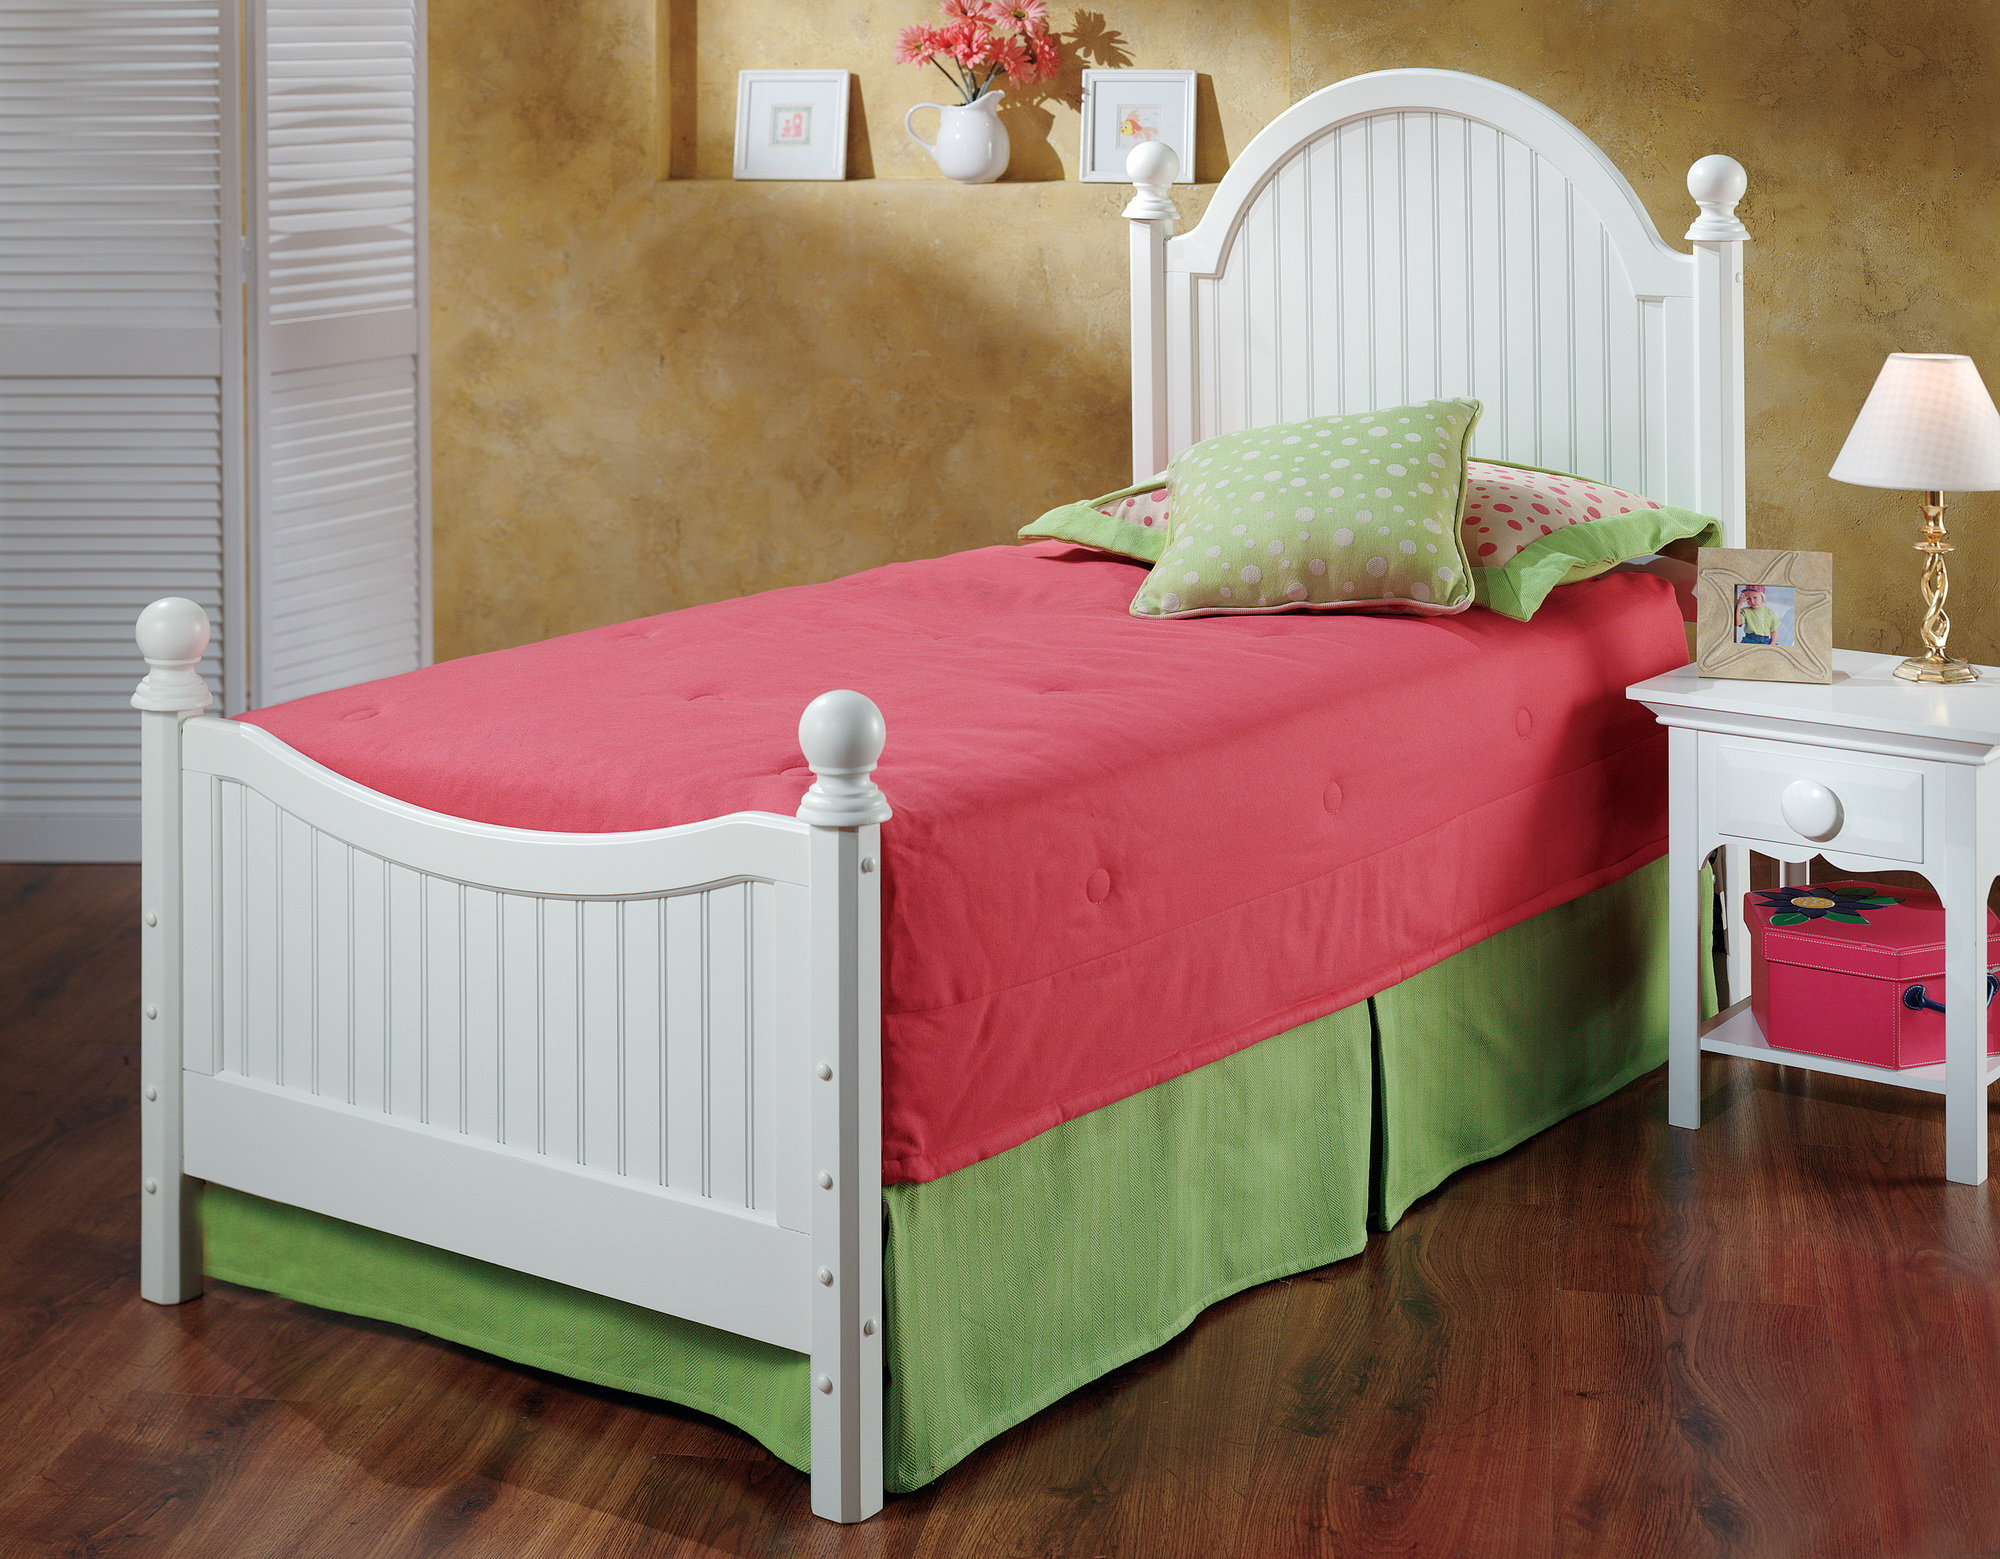 Clockway westfield post bed set full w rails thd7822 for Family code 7822